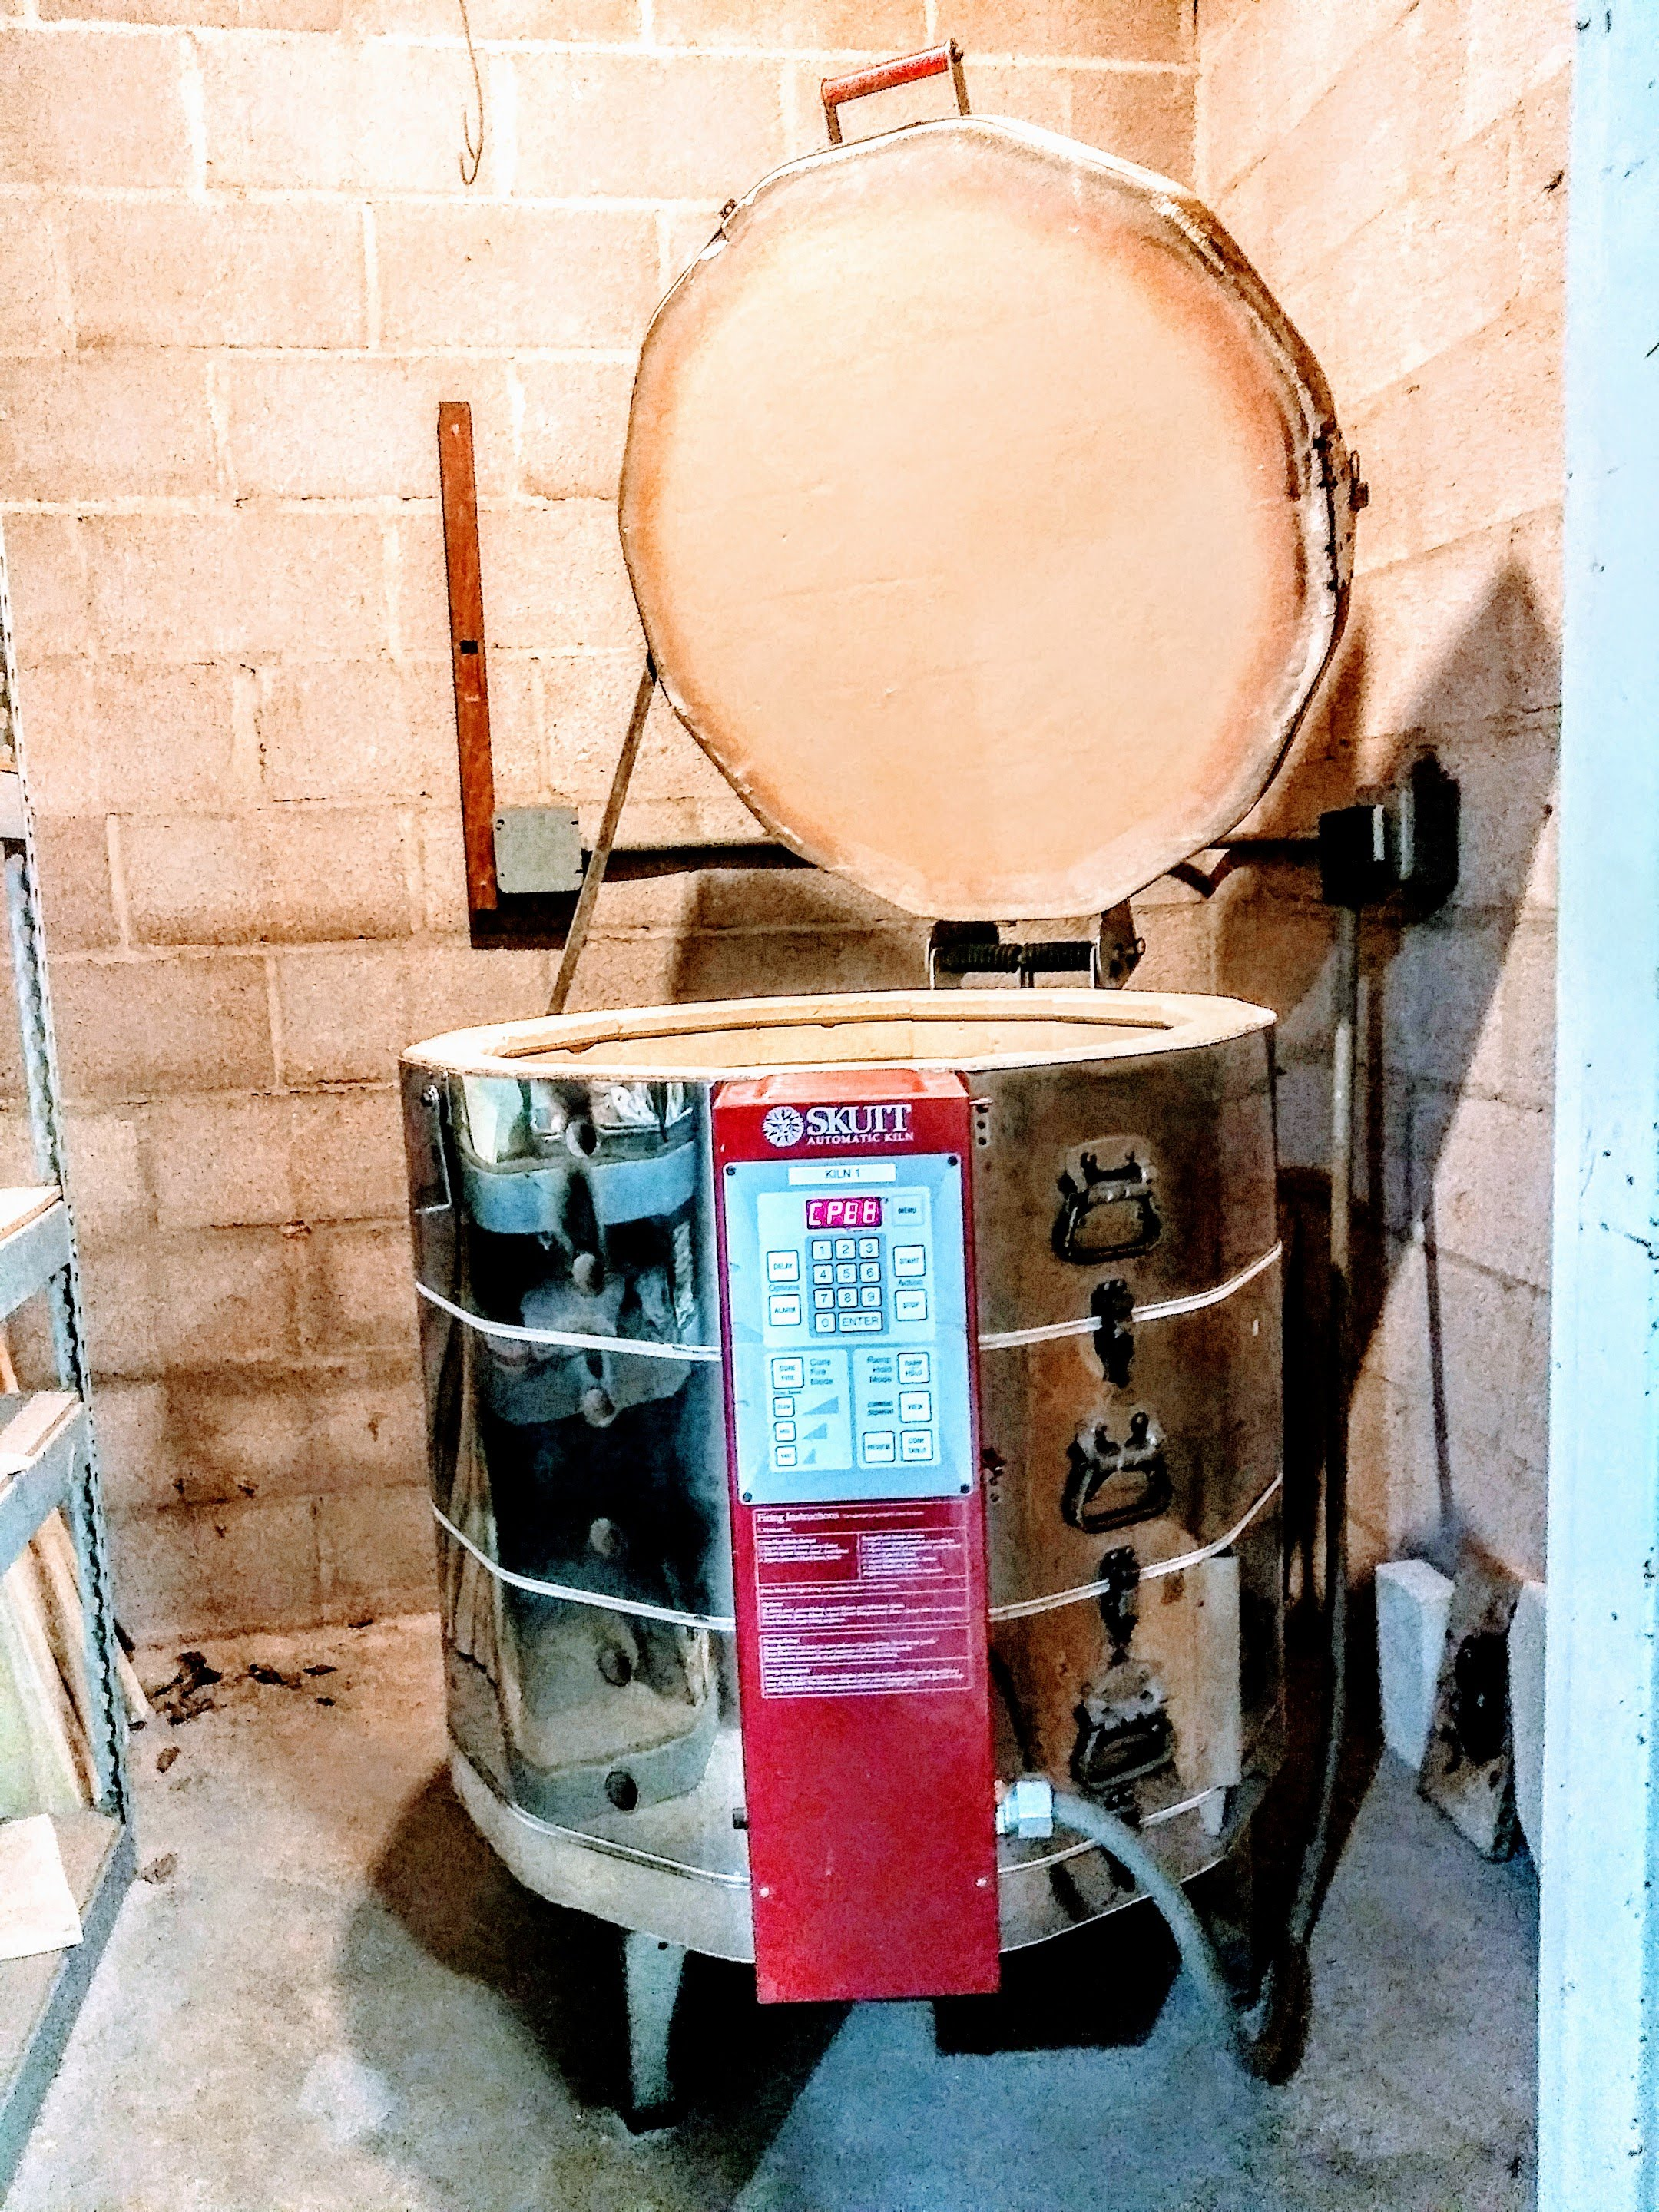 Ceramics kiln at the art center for firing bisque and glazed pottery.  Little Clay Studio, Austin, Texas.